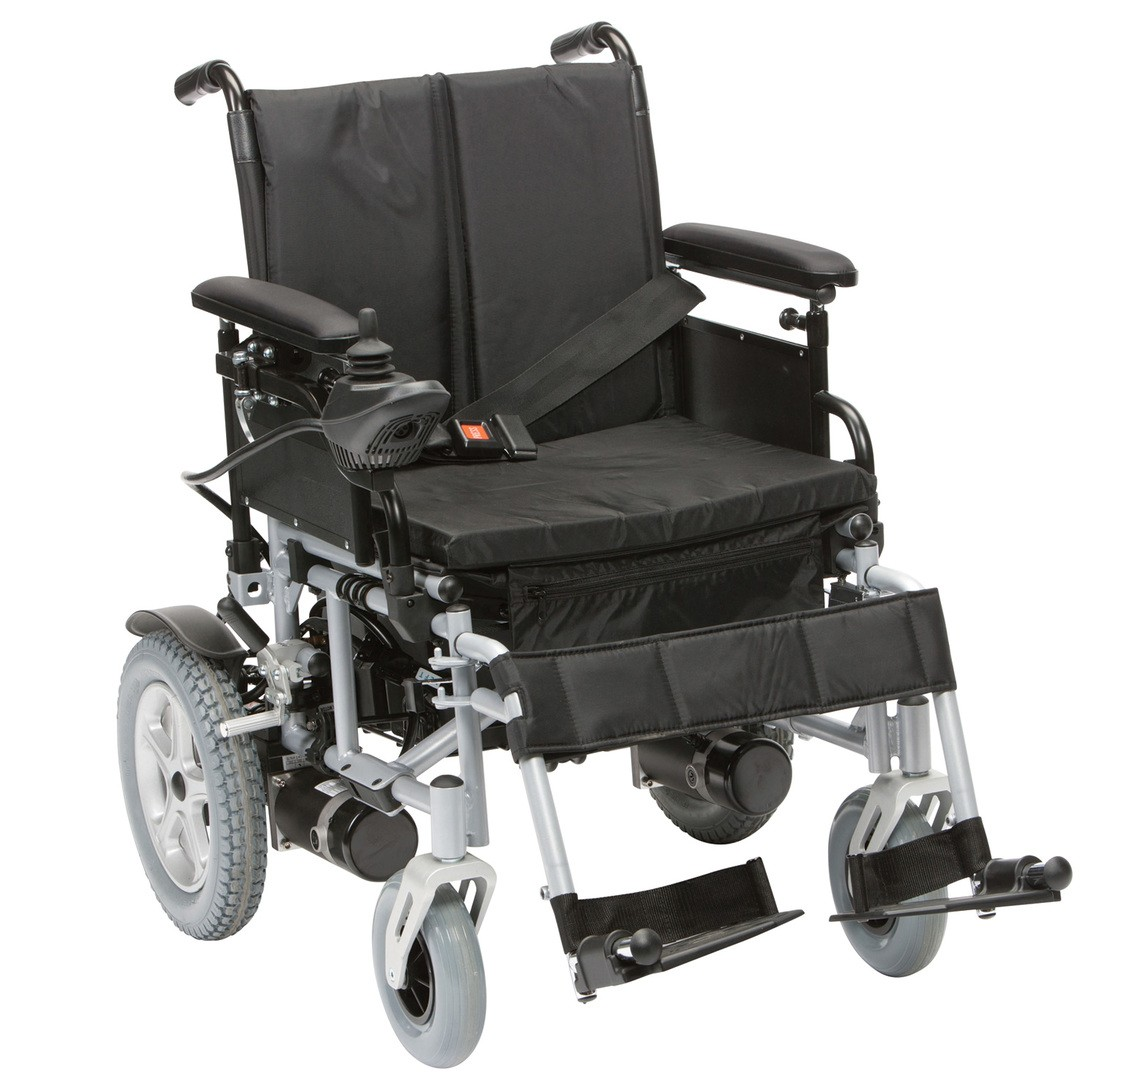 Motorized Wheel Chairs Cirrus Powerchair And Electric Wheelchair At Low Prices